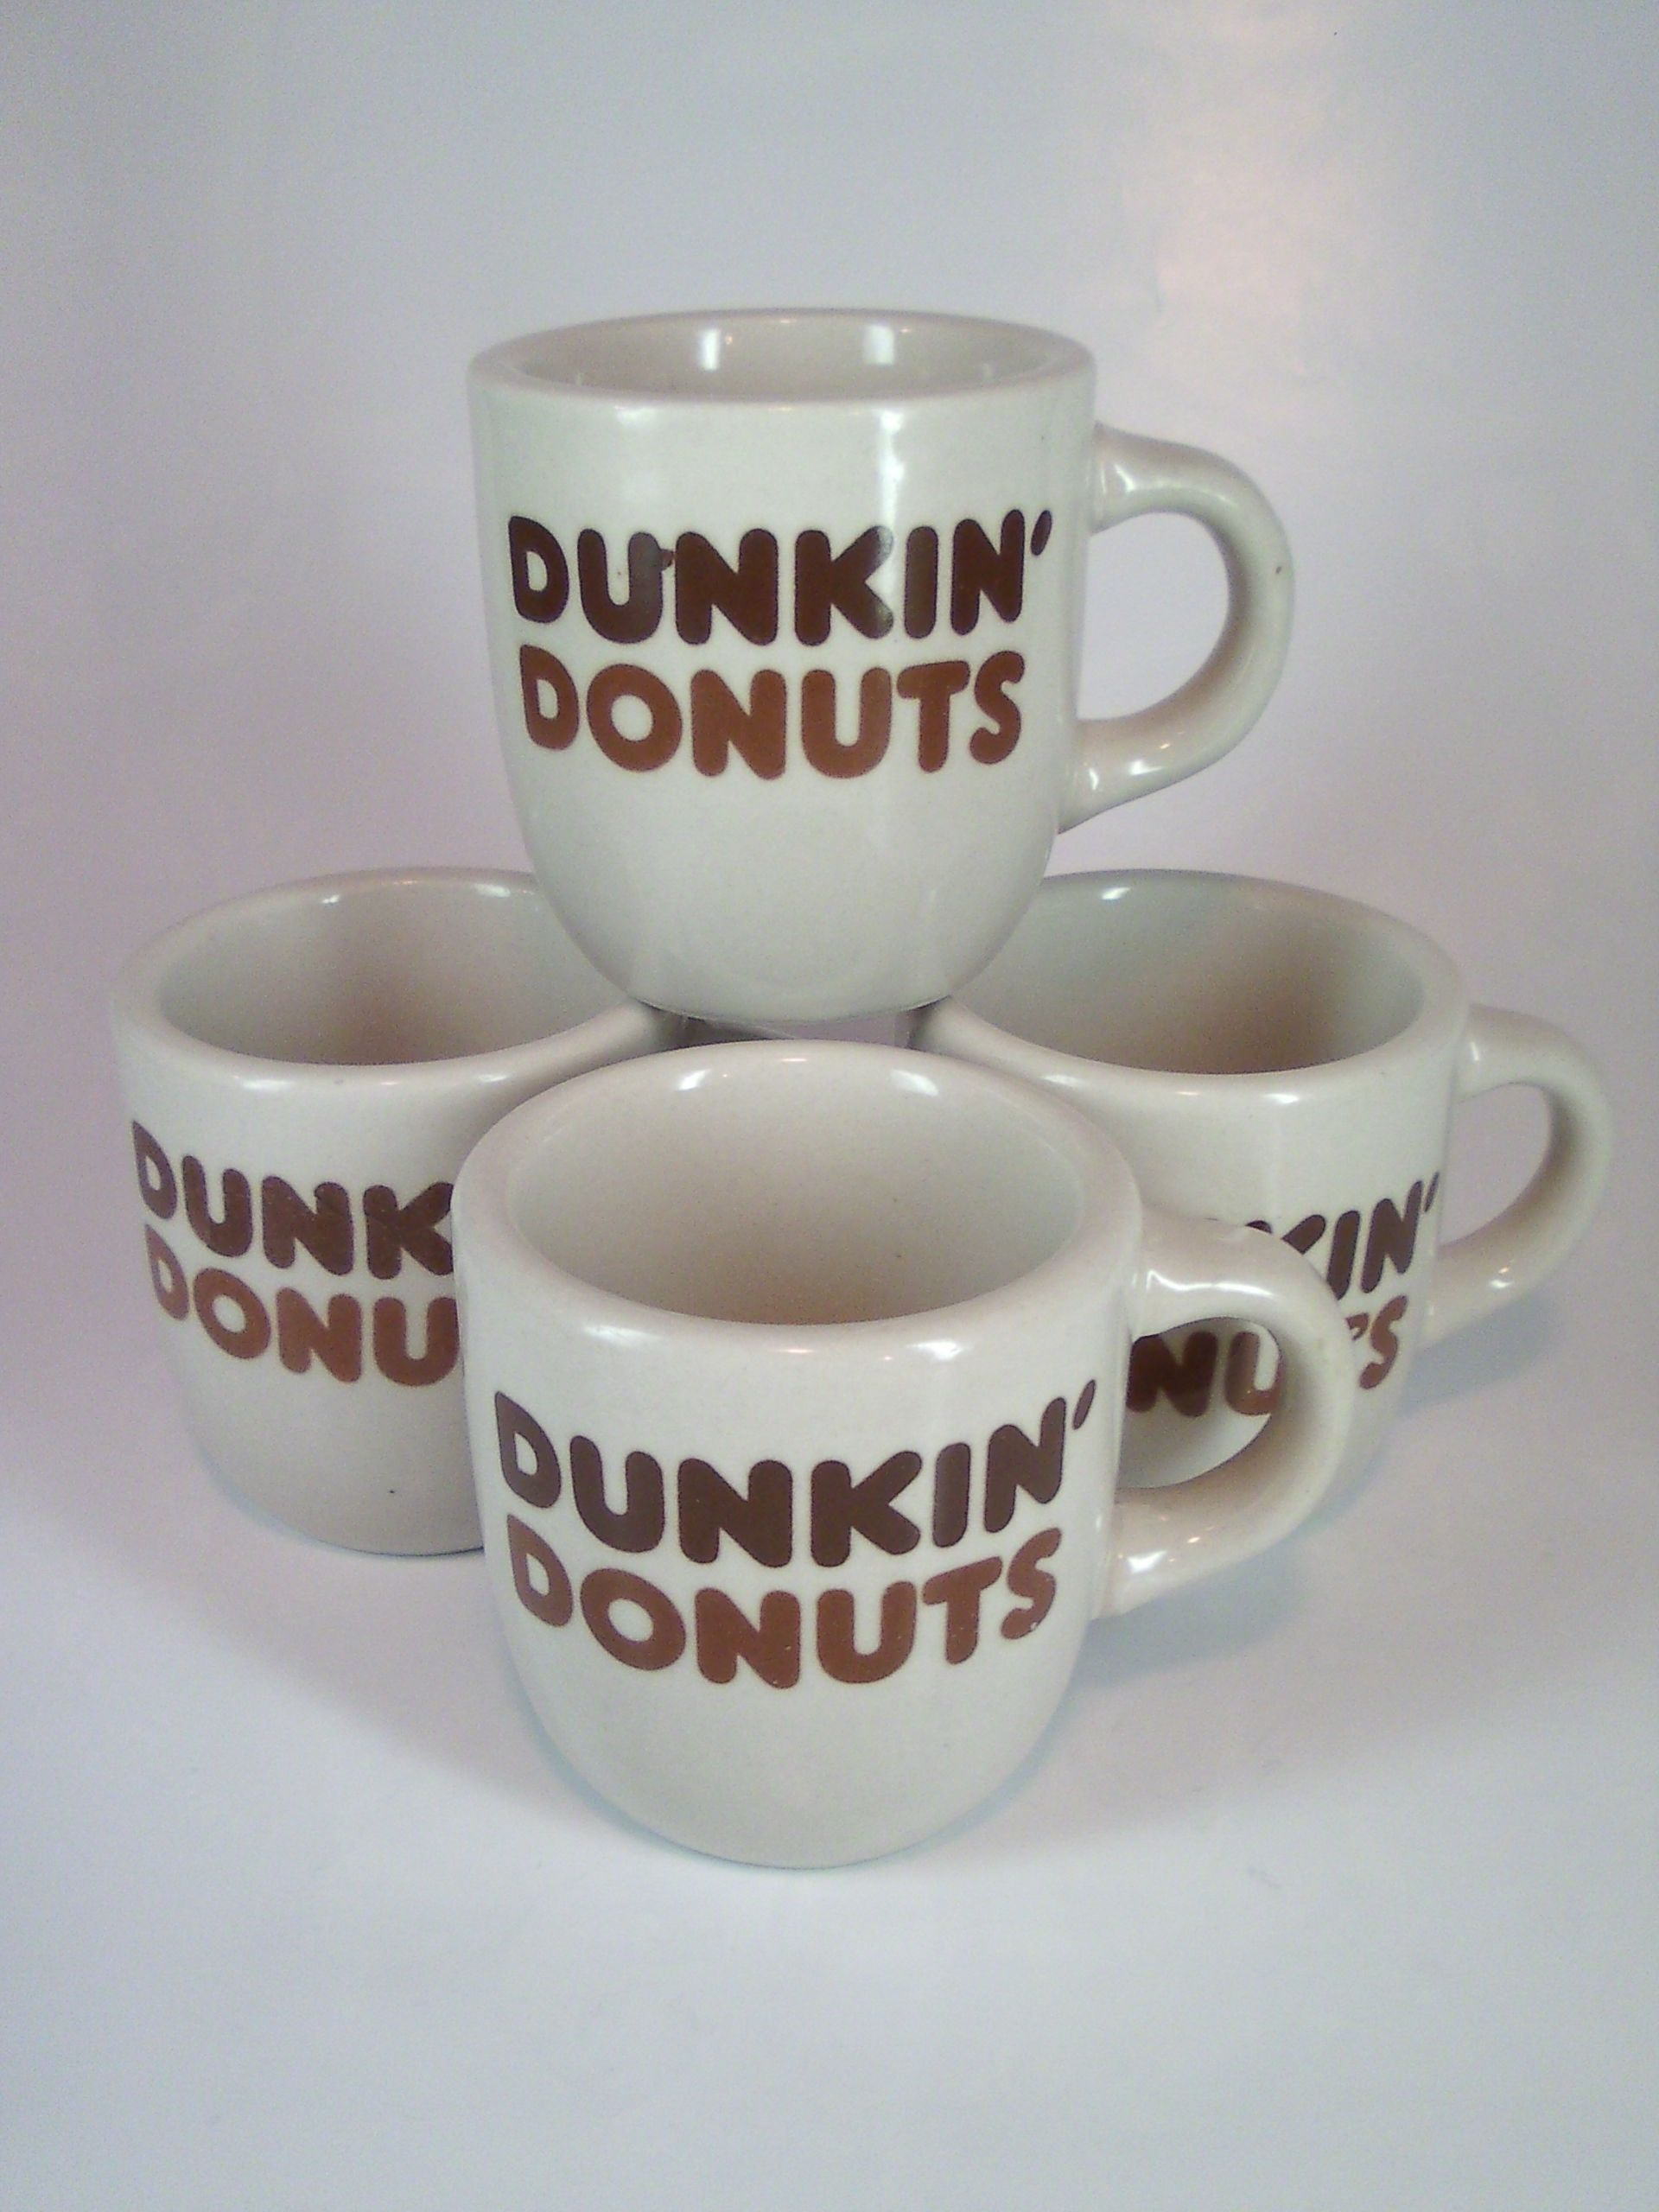 Vintage ceramic Dunkin Donuts coffee mugs. For sale at AlienVintage on Etsy.com.